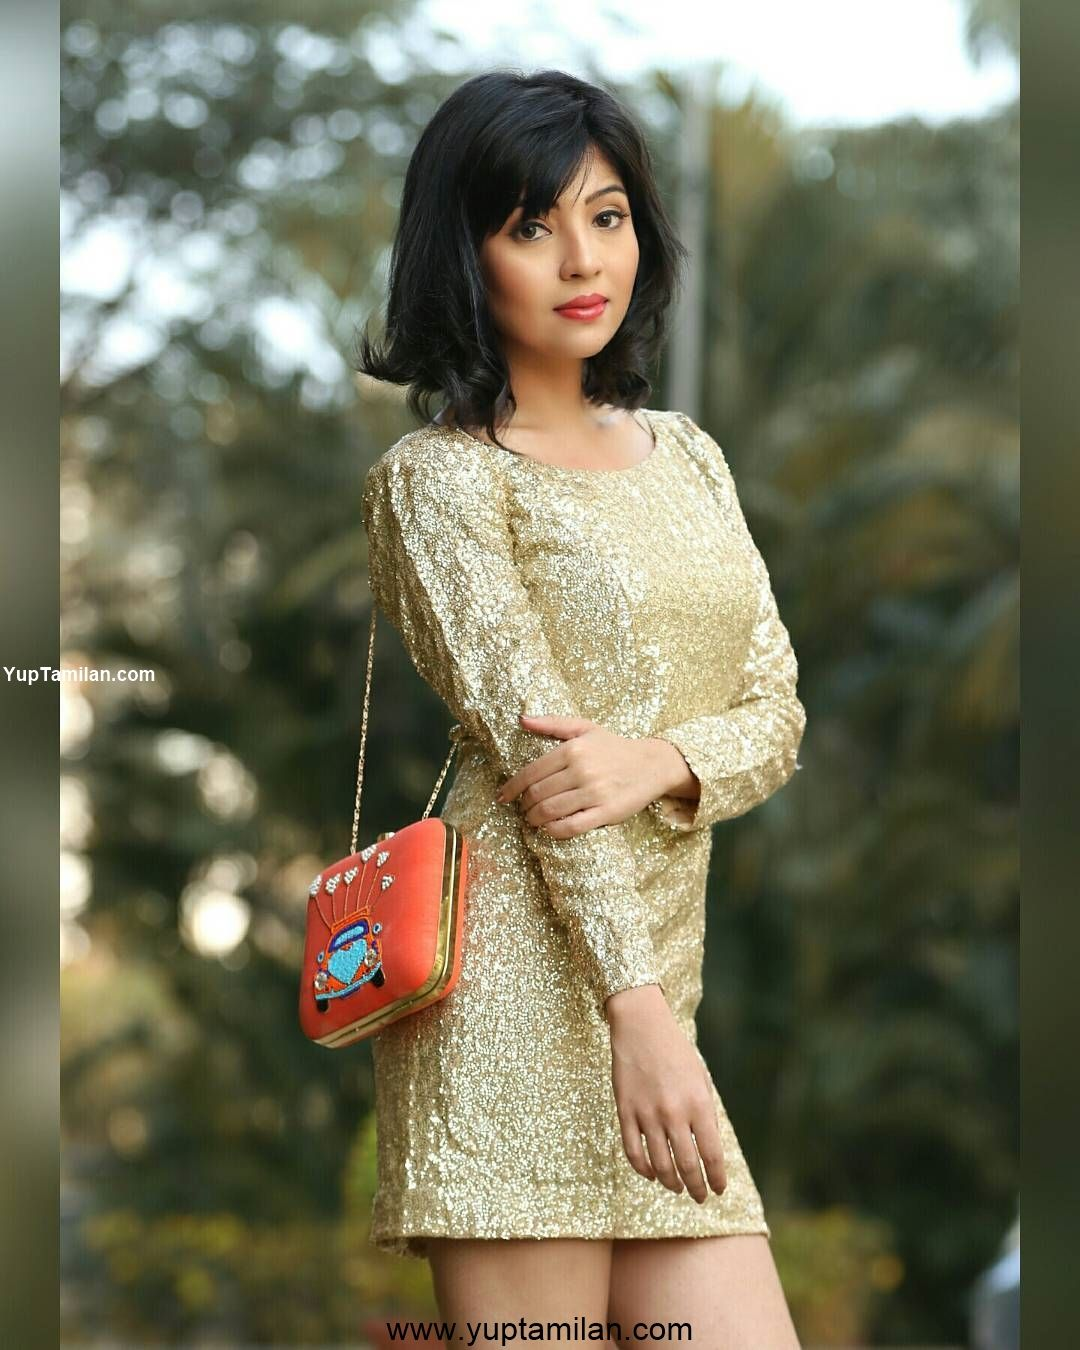 Barkha Singh Photos, Images, Pictures, Wallpaper